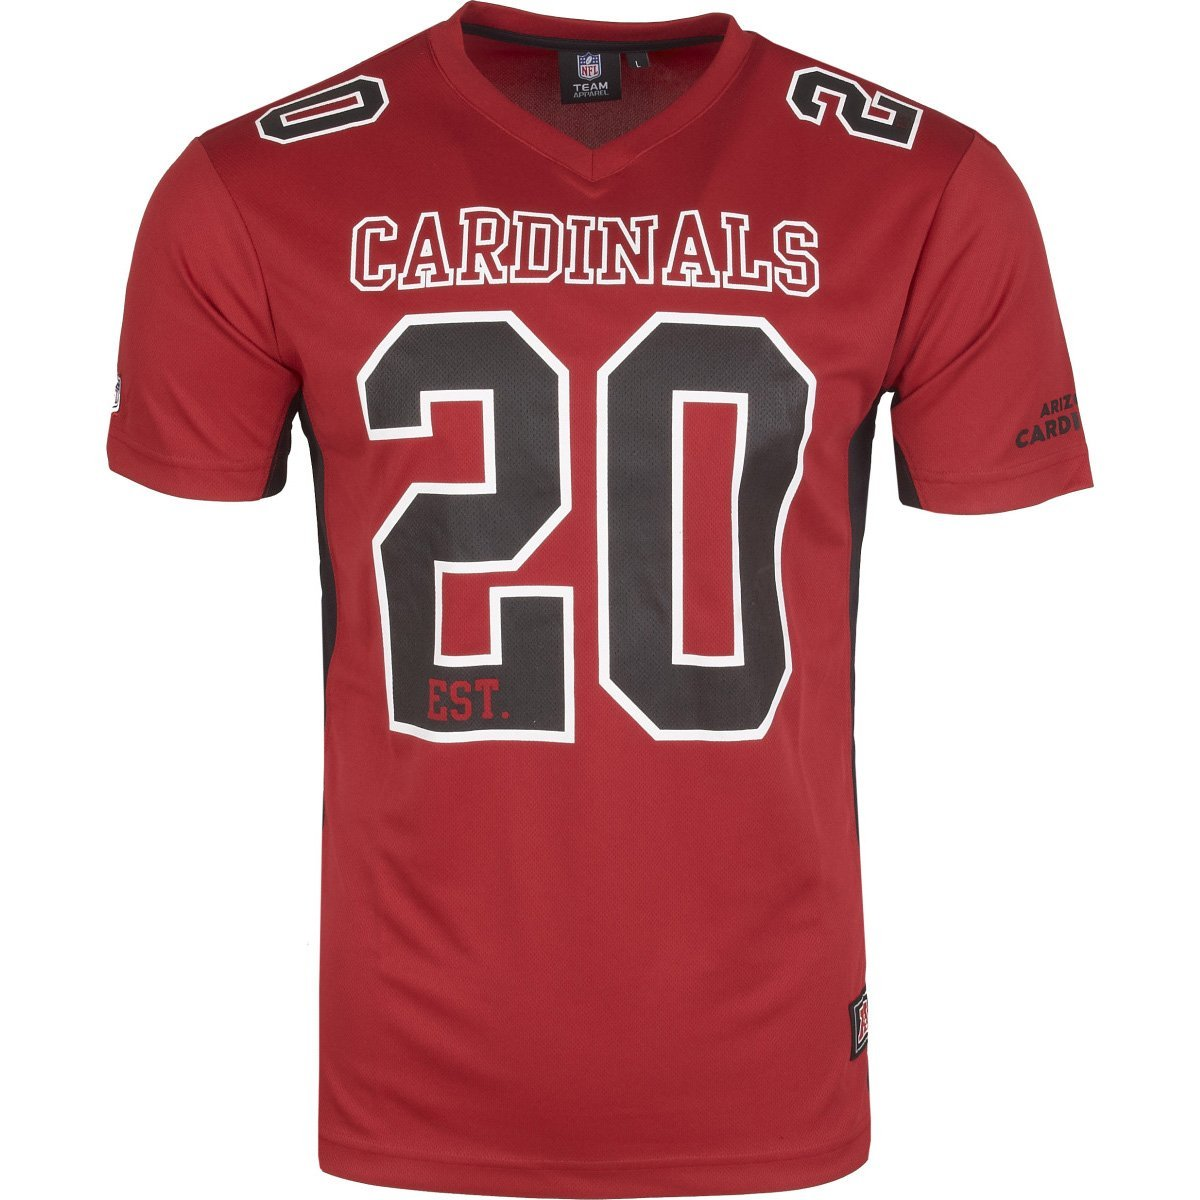 Majestic NFL Mesh Polyester Jersey Shirt - Arizona Cardinals majestic athletics